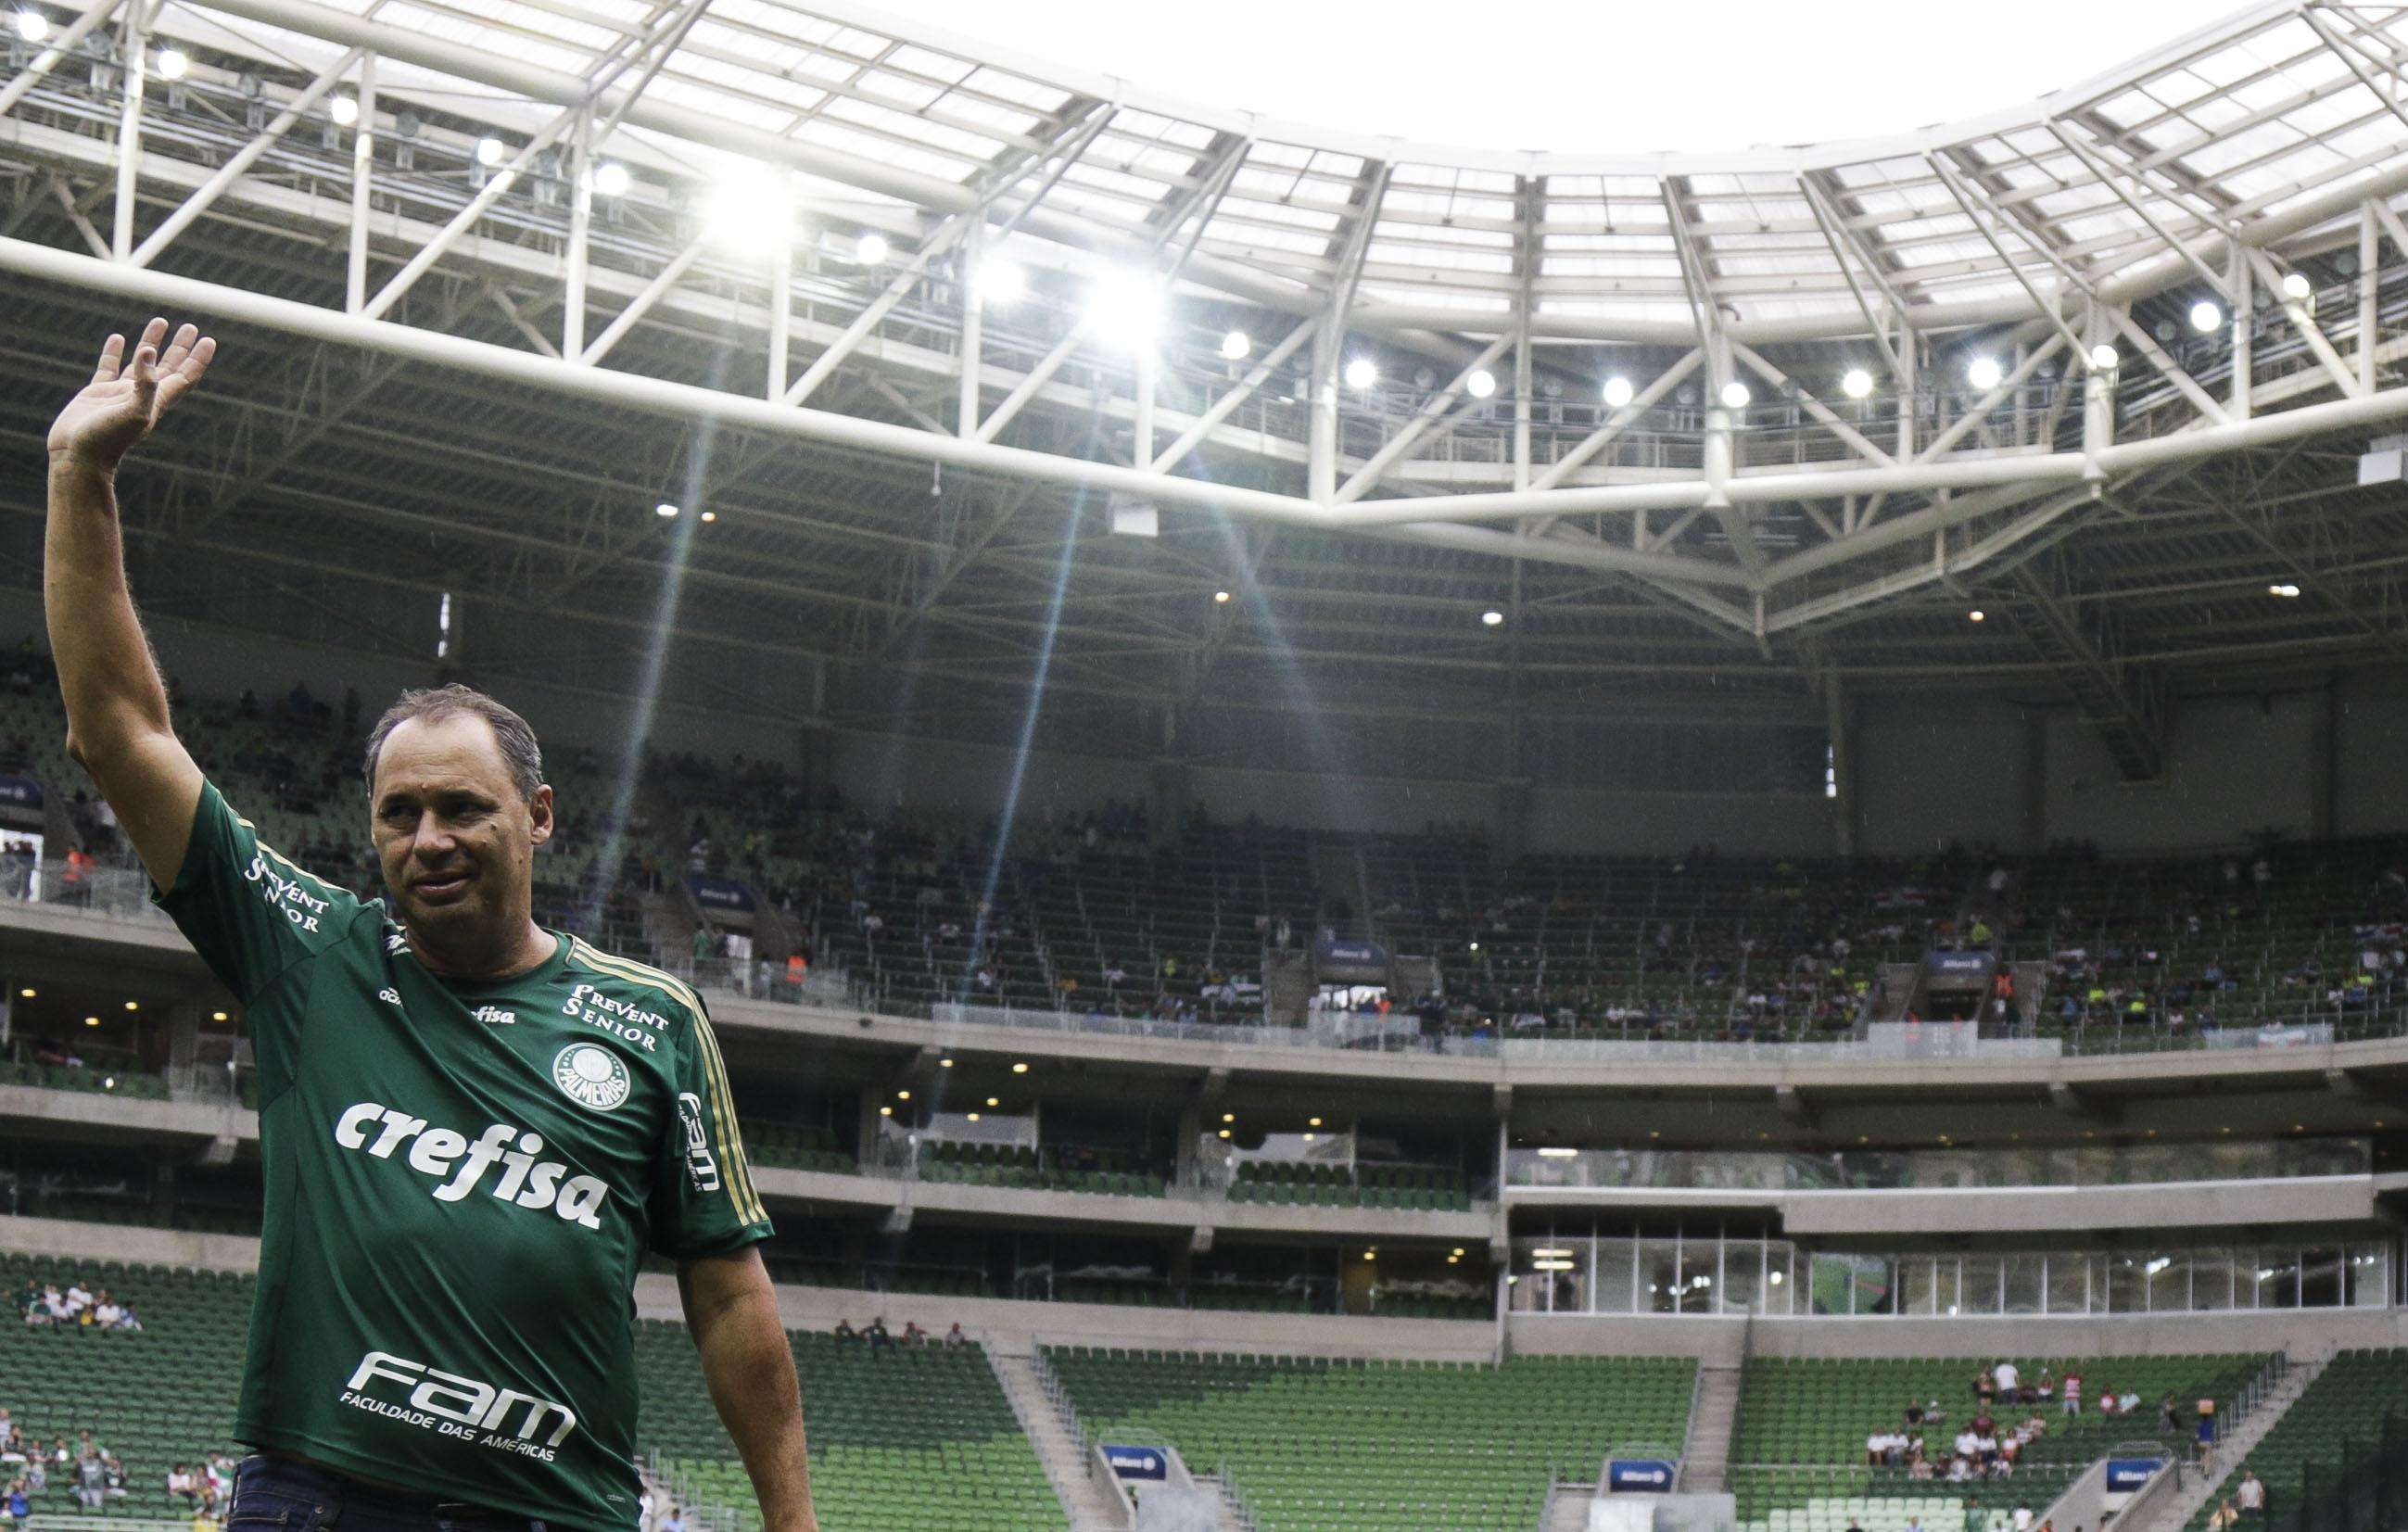 Evair foi homenageado no Allianz Parque por seus 50 anos de vida Foto: Miguel Schincariol/Gazeta Press